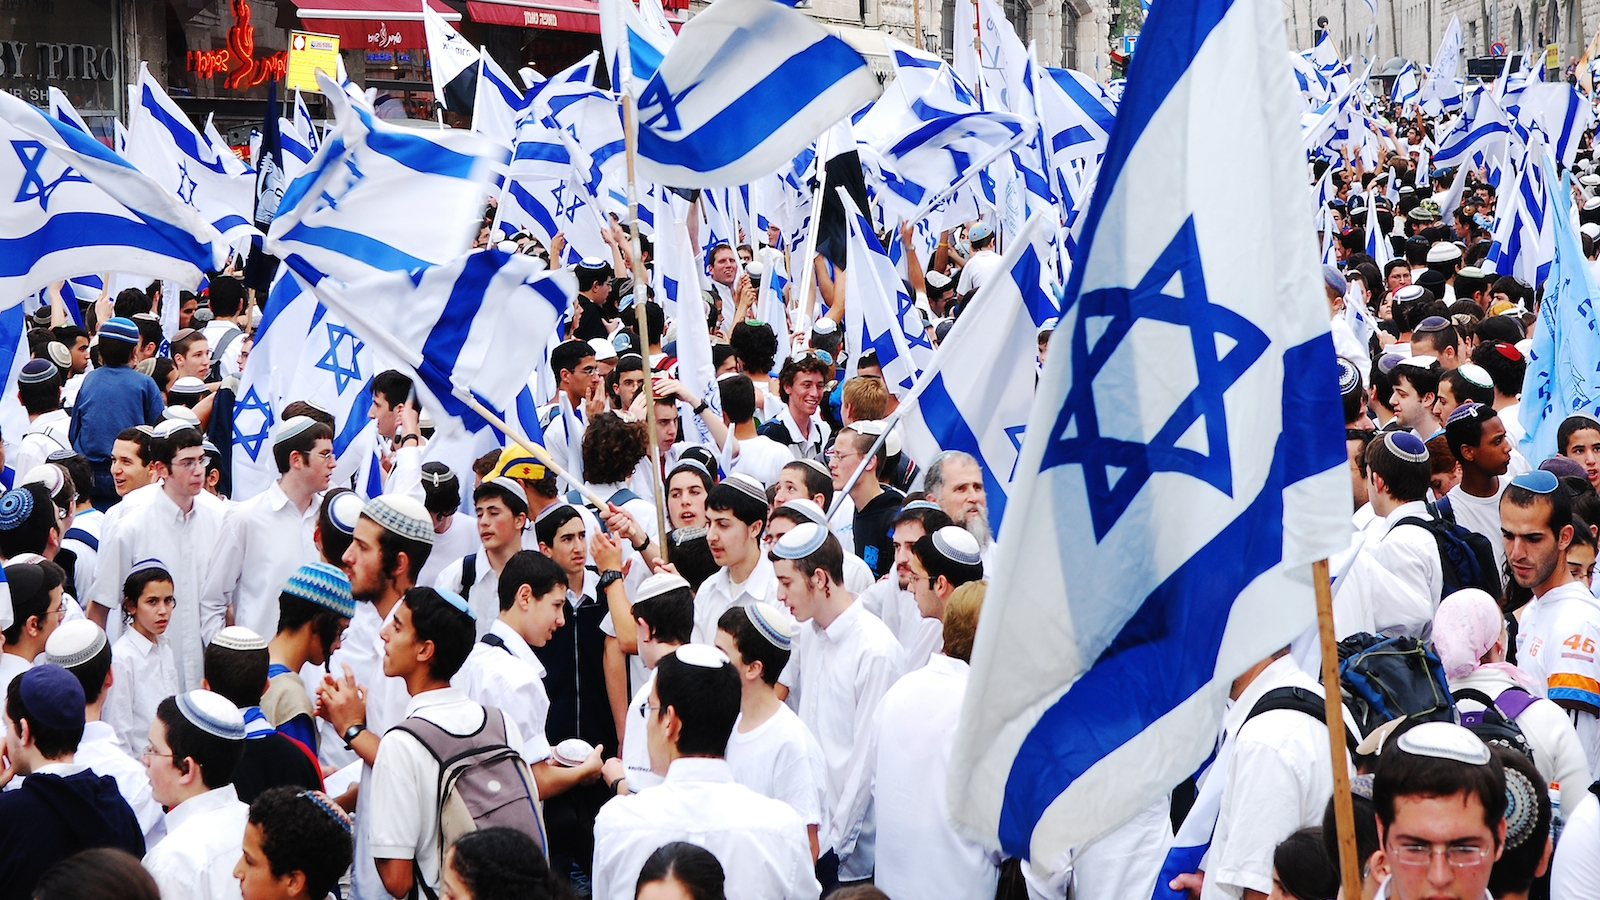 Yom Ha'atzmaut: Israel Independence Day | My Jewish Learning